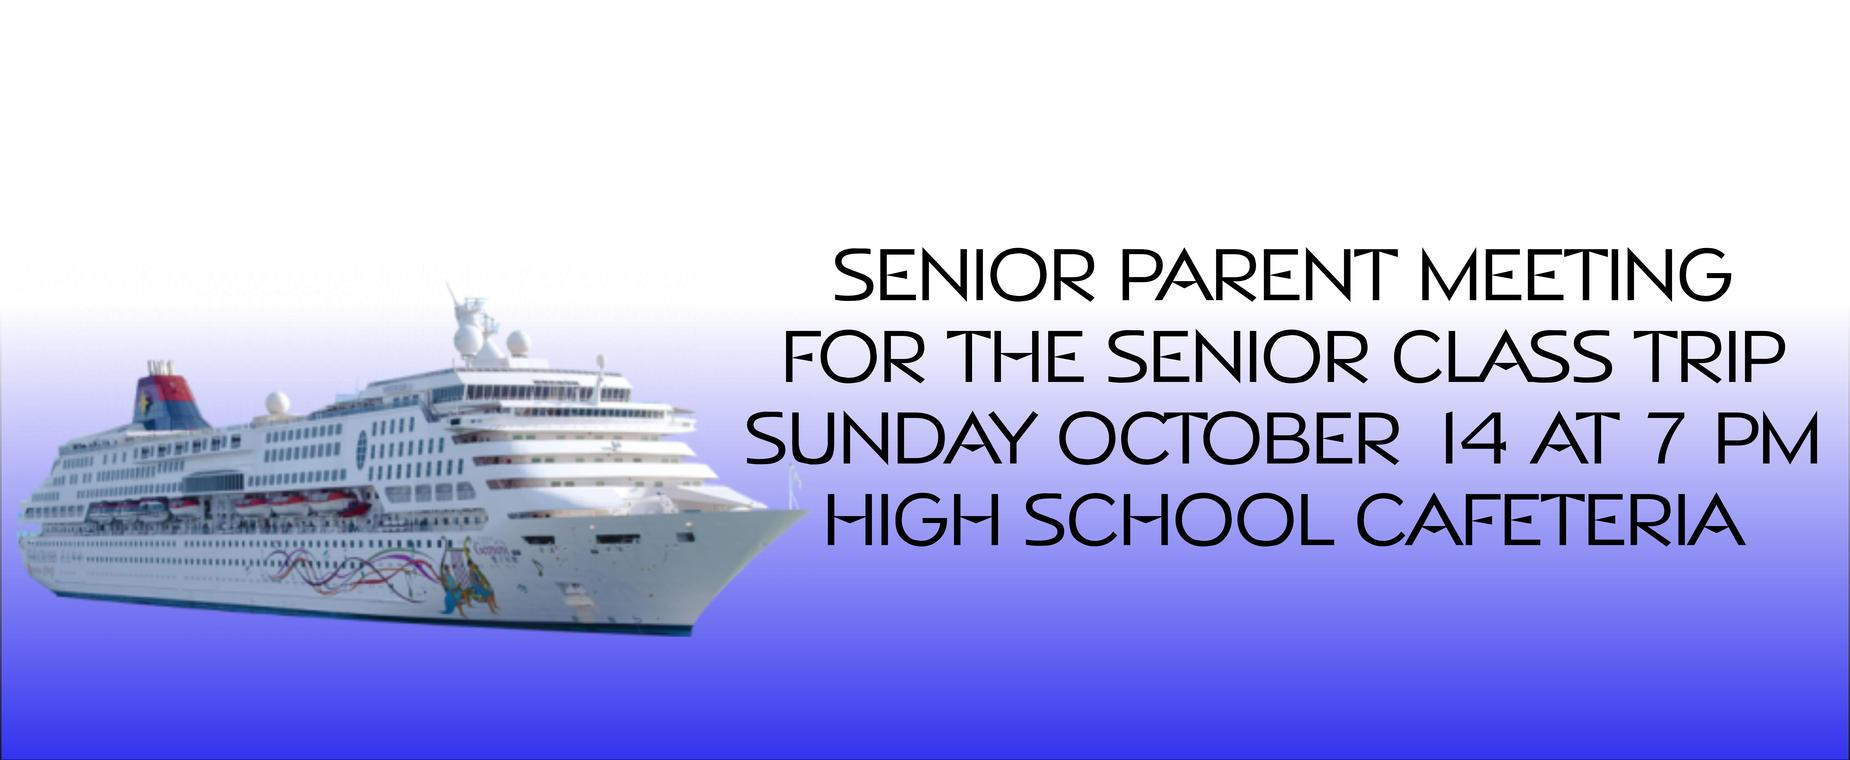 Senior parent meeting for class trip. Oct 14 at 7 in cafeteria